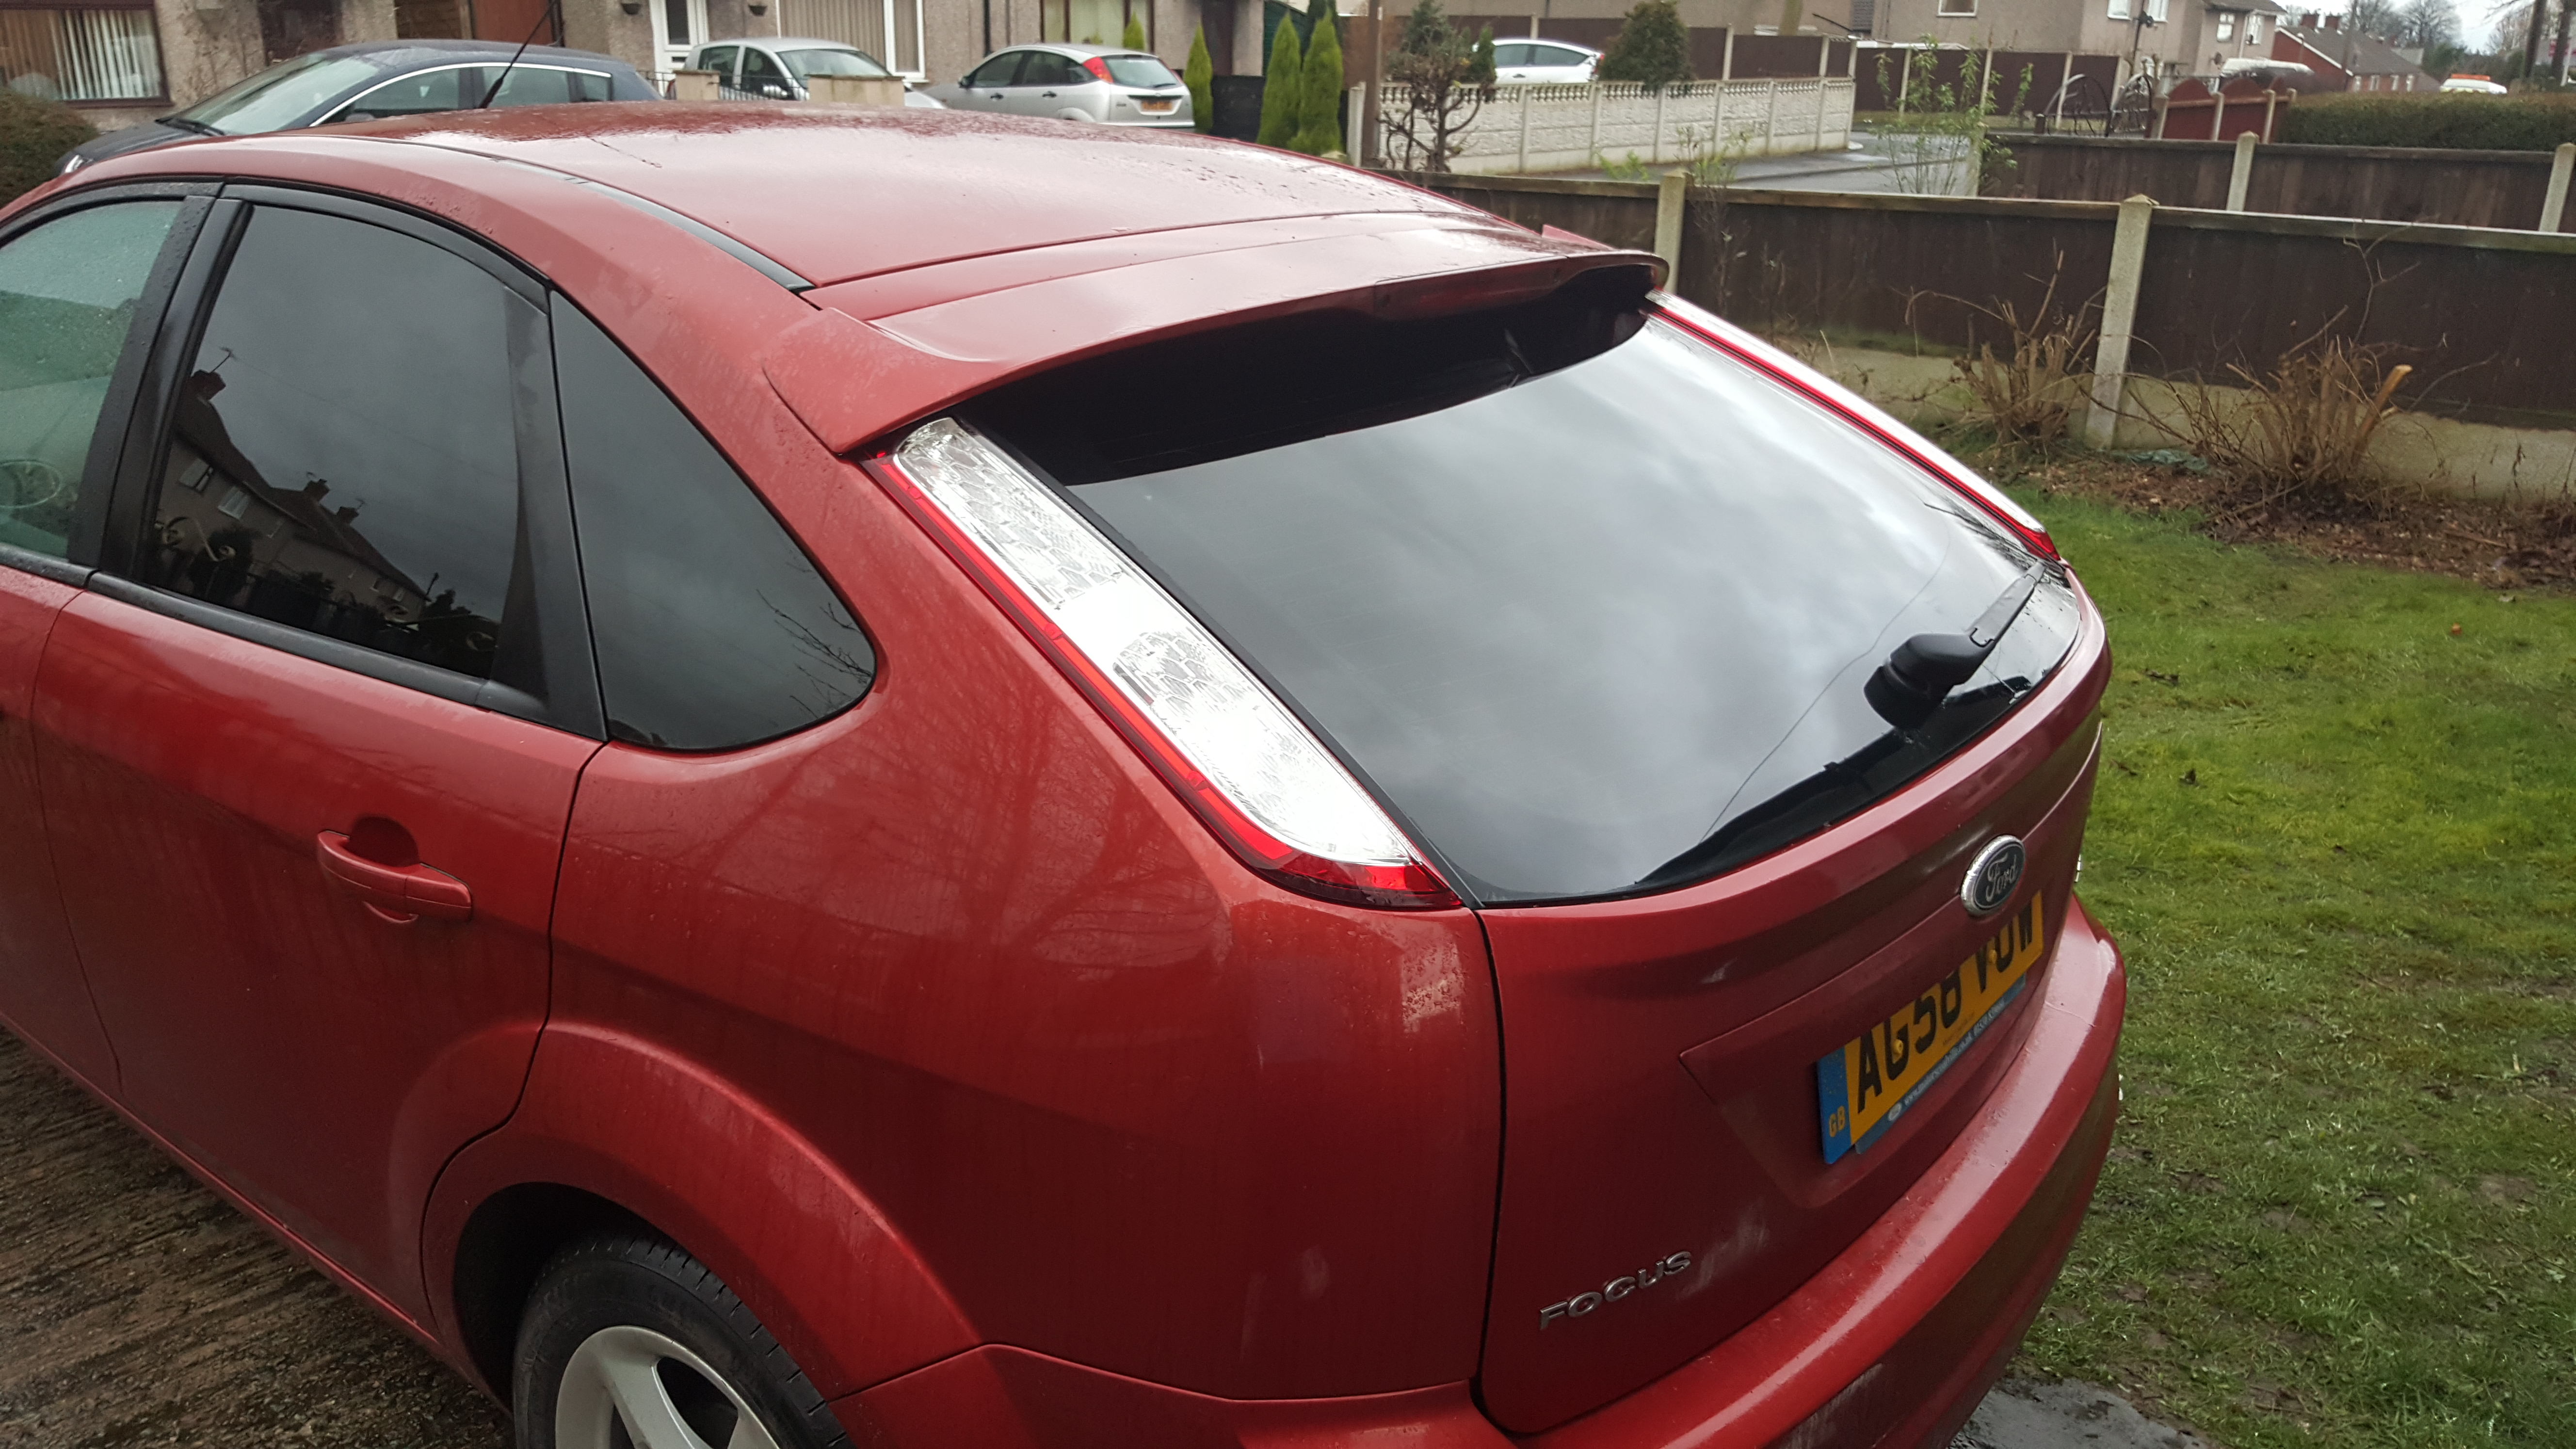 Ford Focus MK2 - 5% Limo